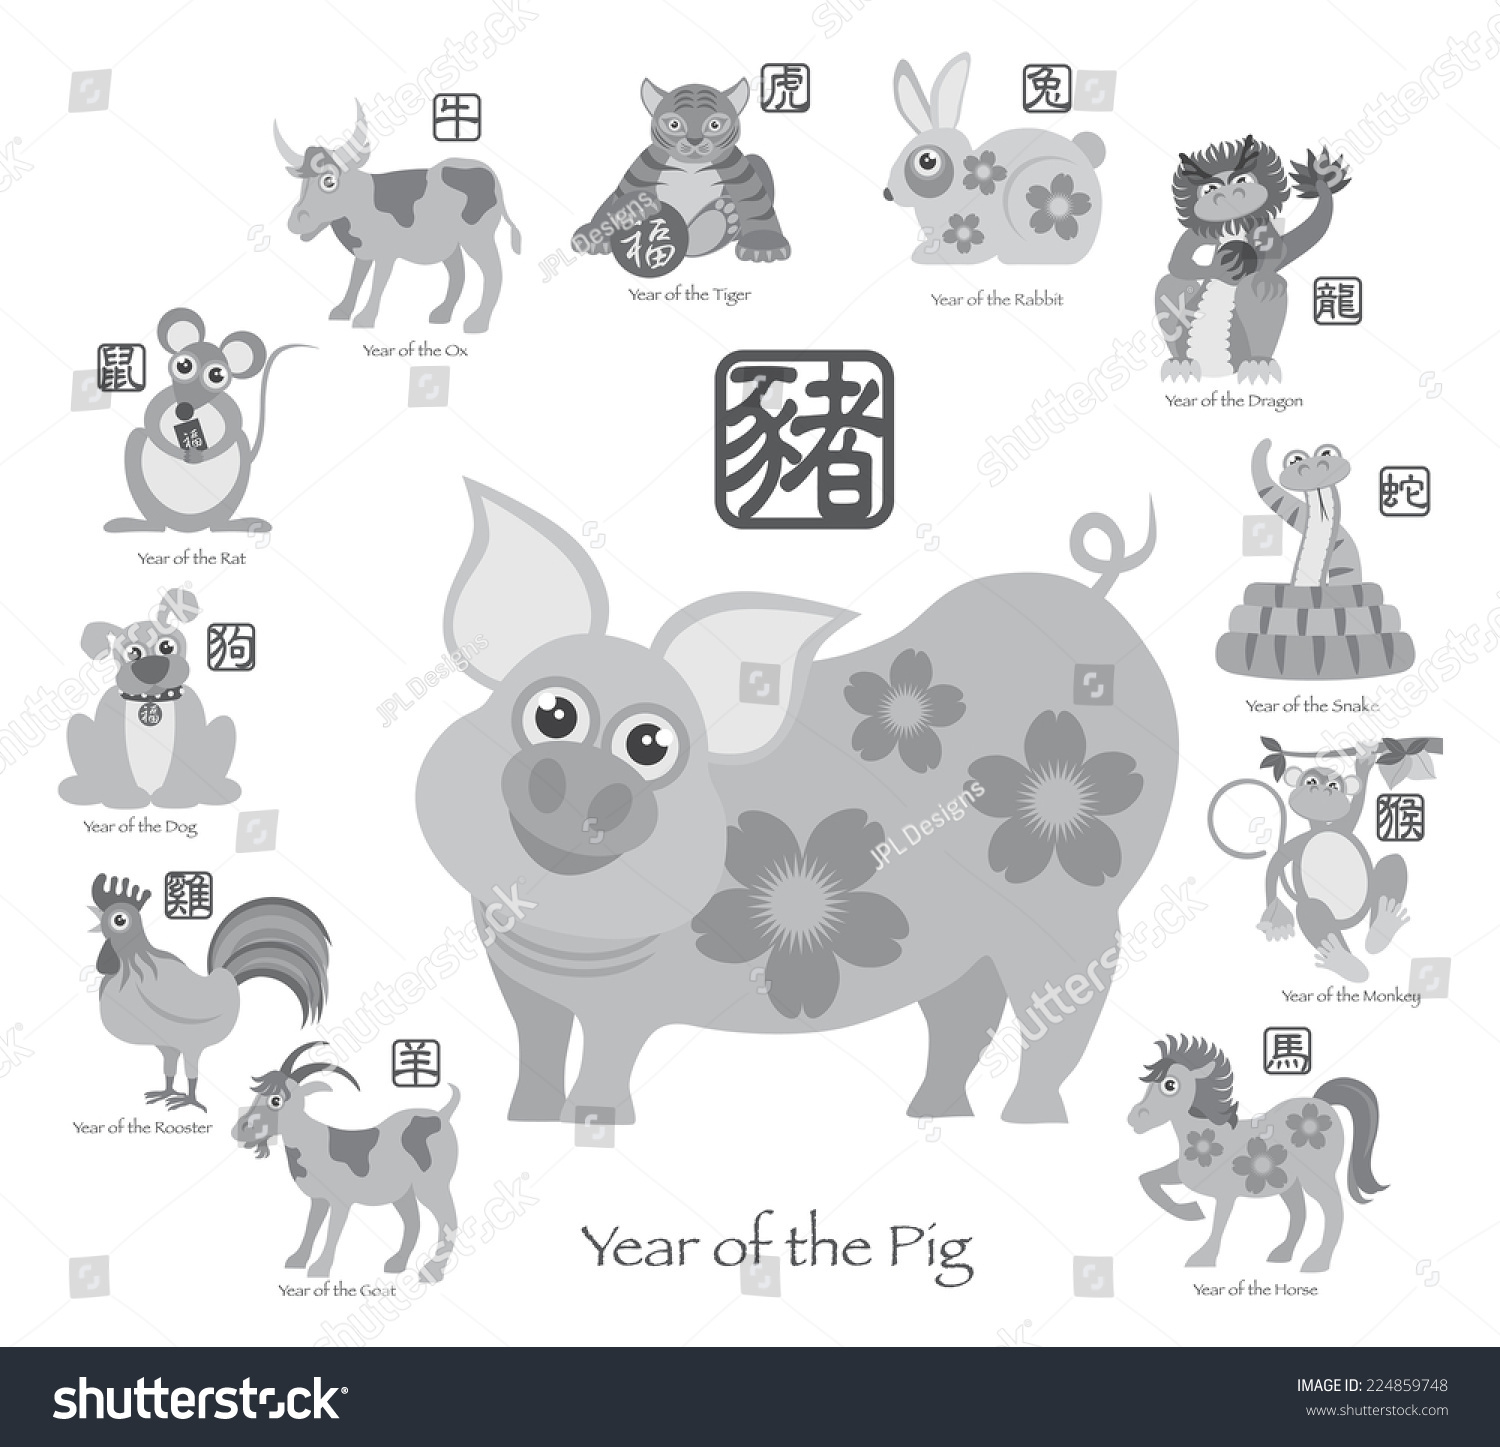 Chinese New Year Pig Twelve Zodiacs Stock Illustration 224859748